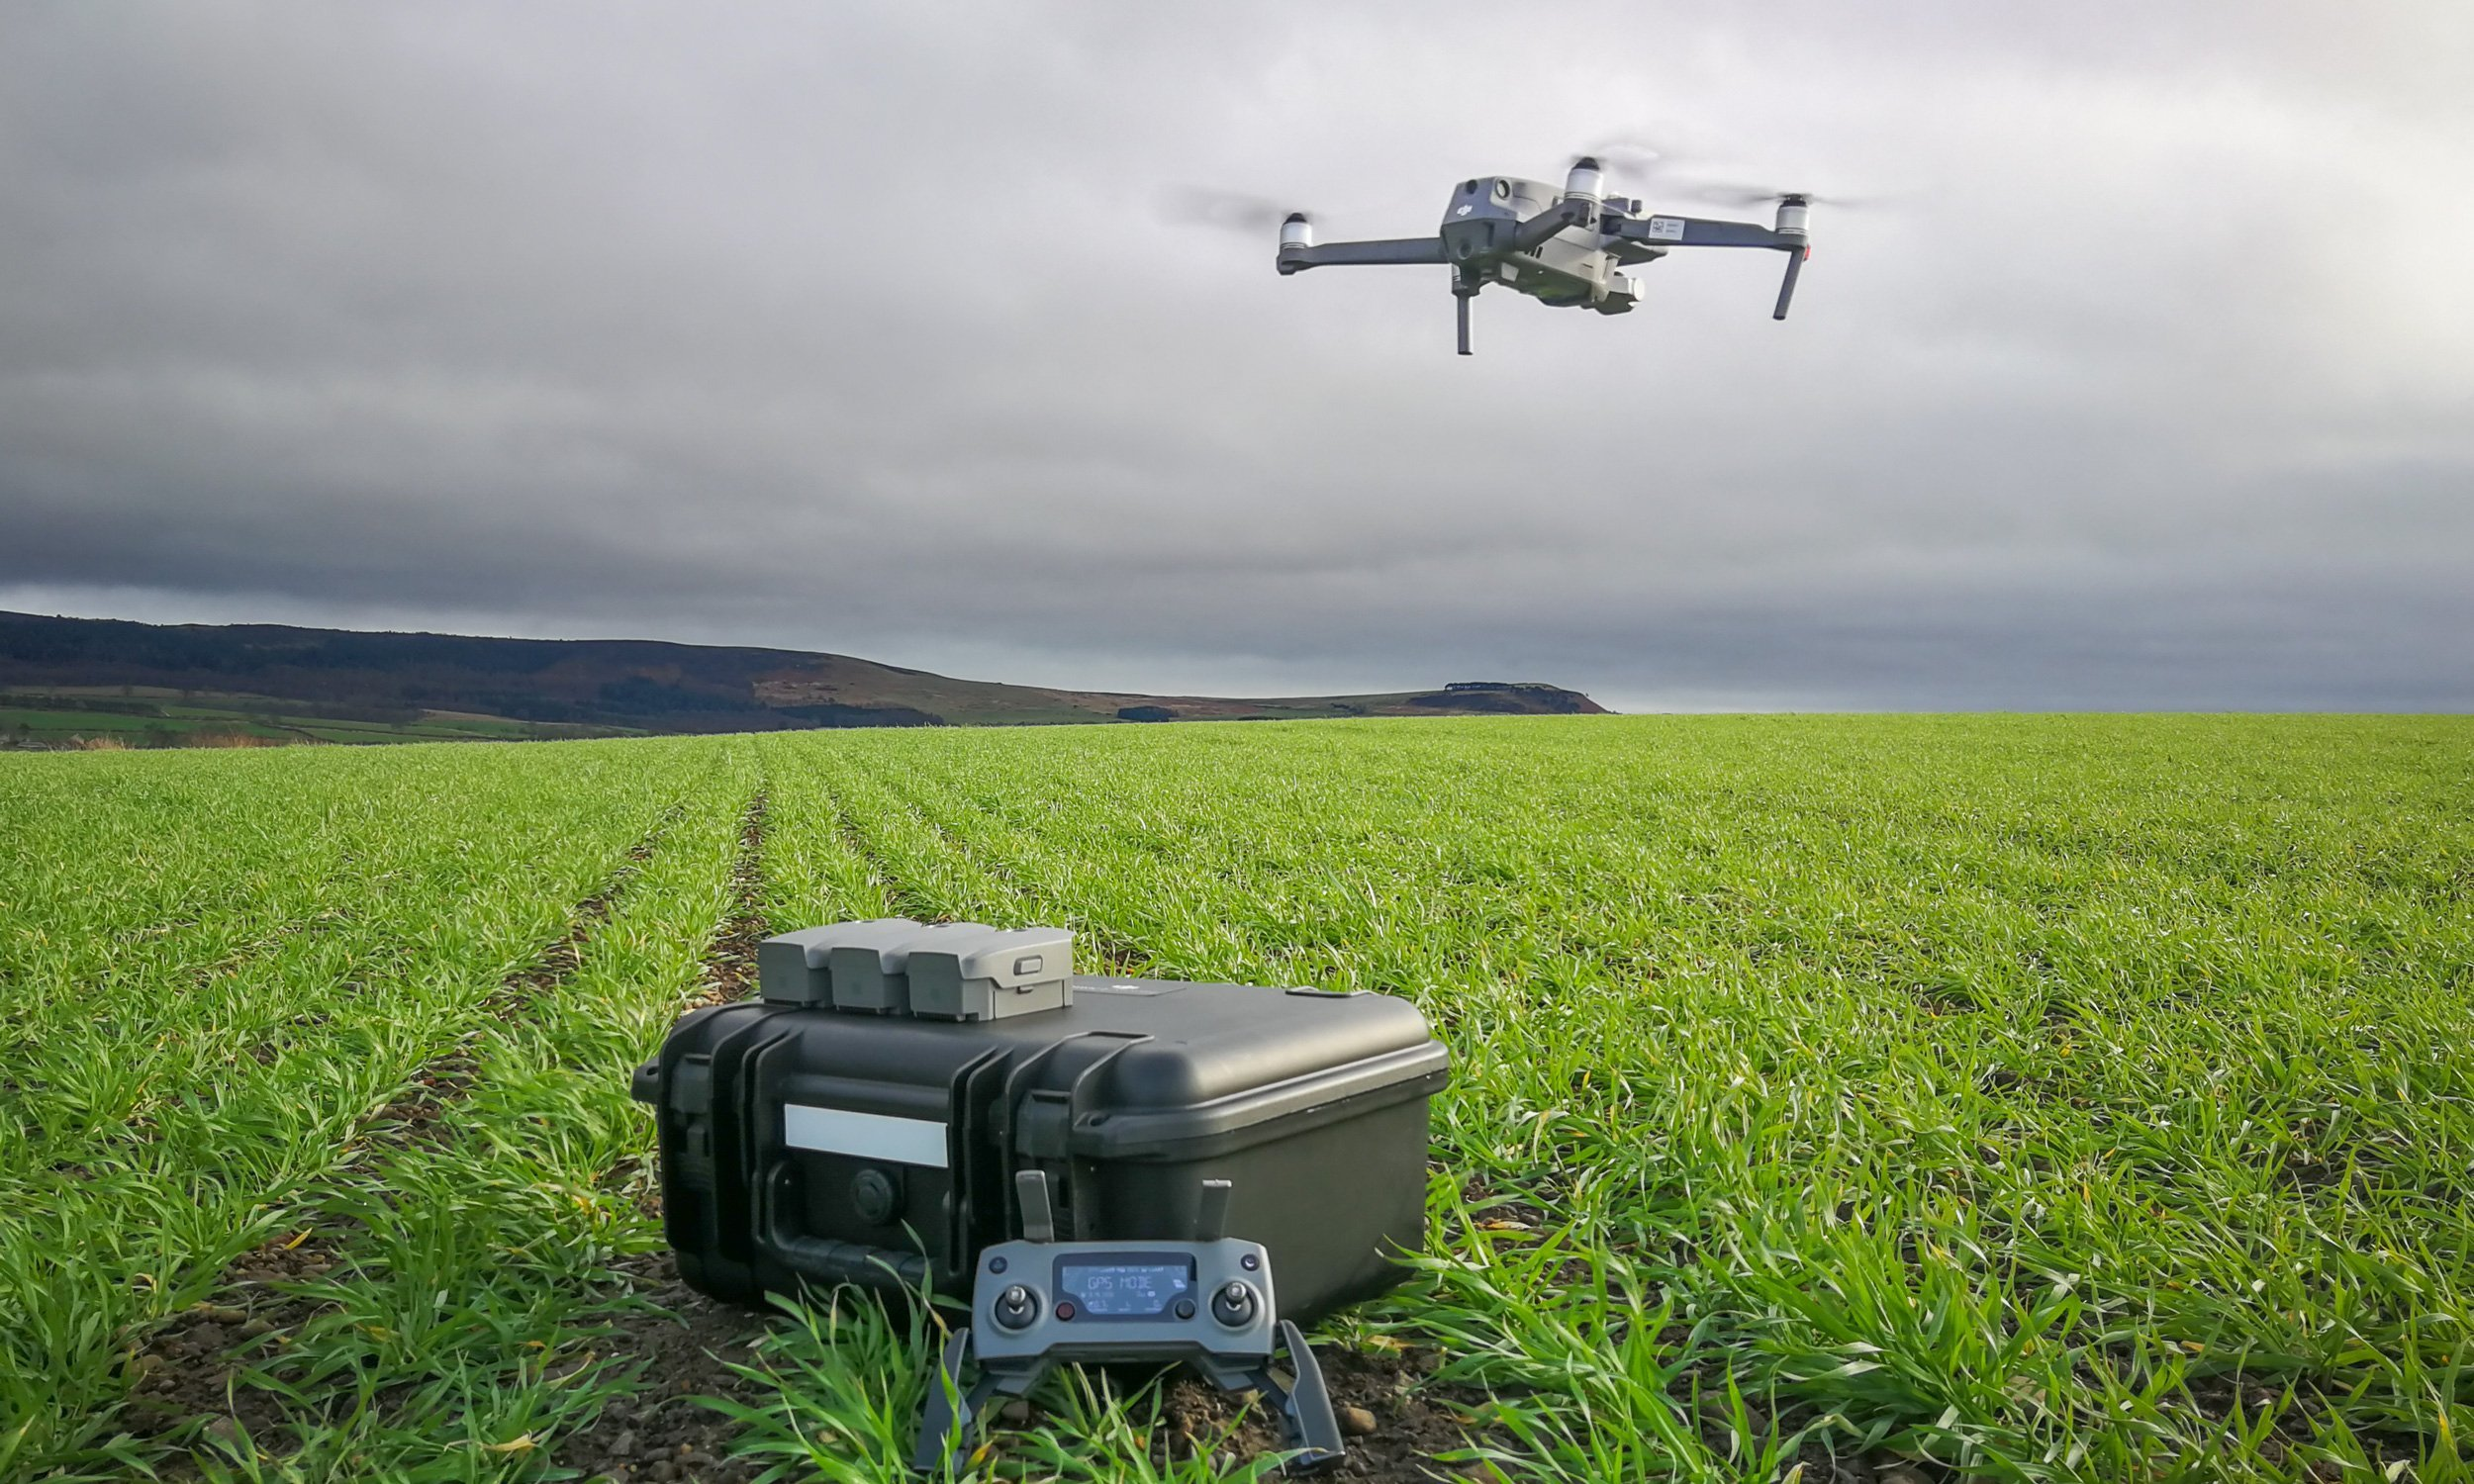 A Farmer Monitoring Crops with Drones